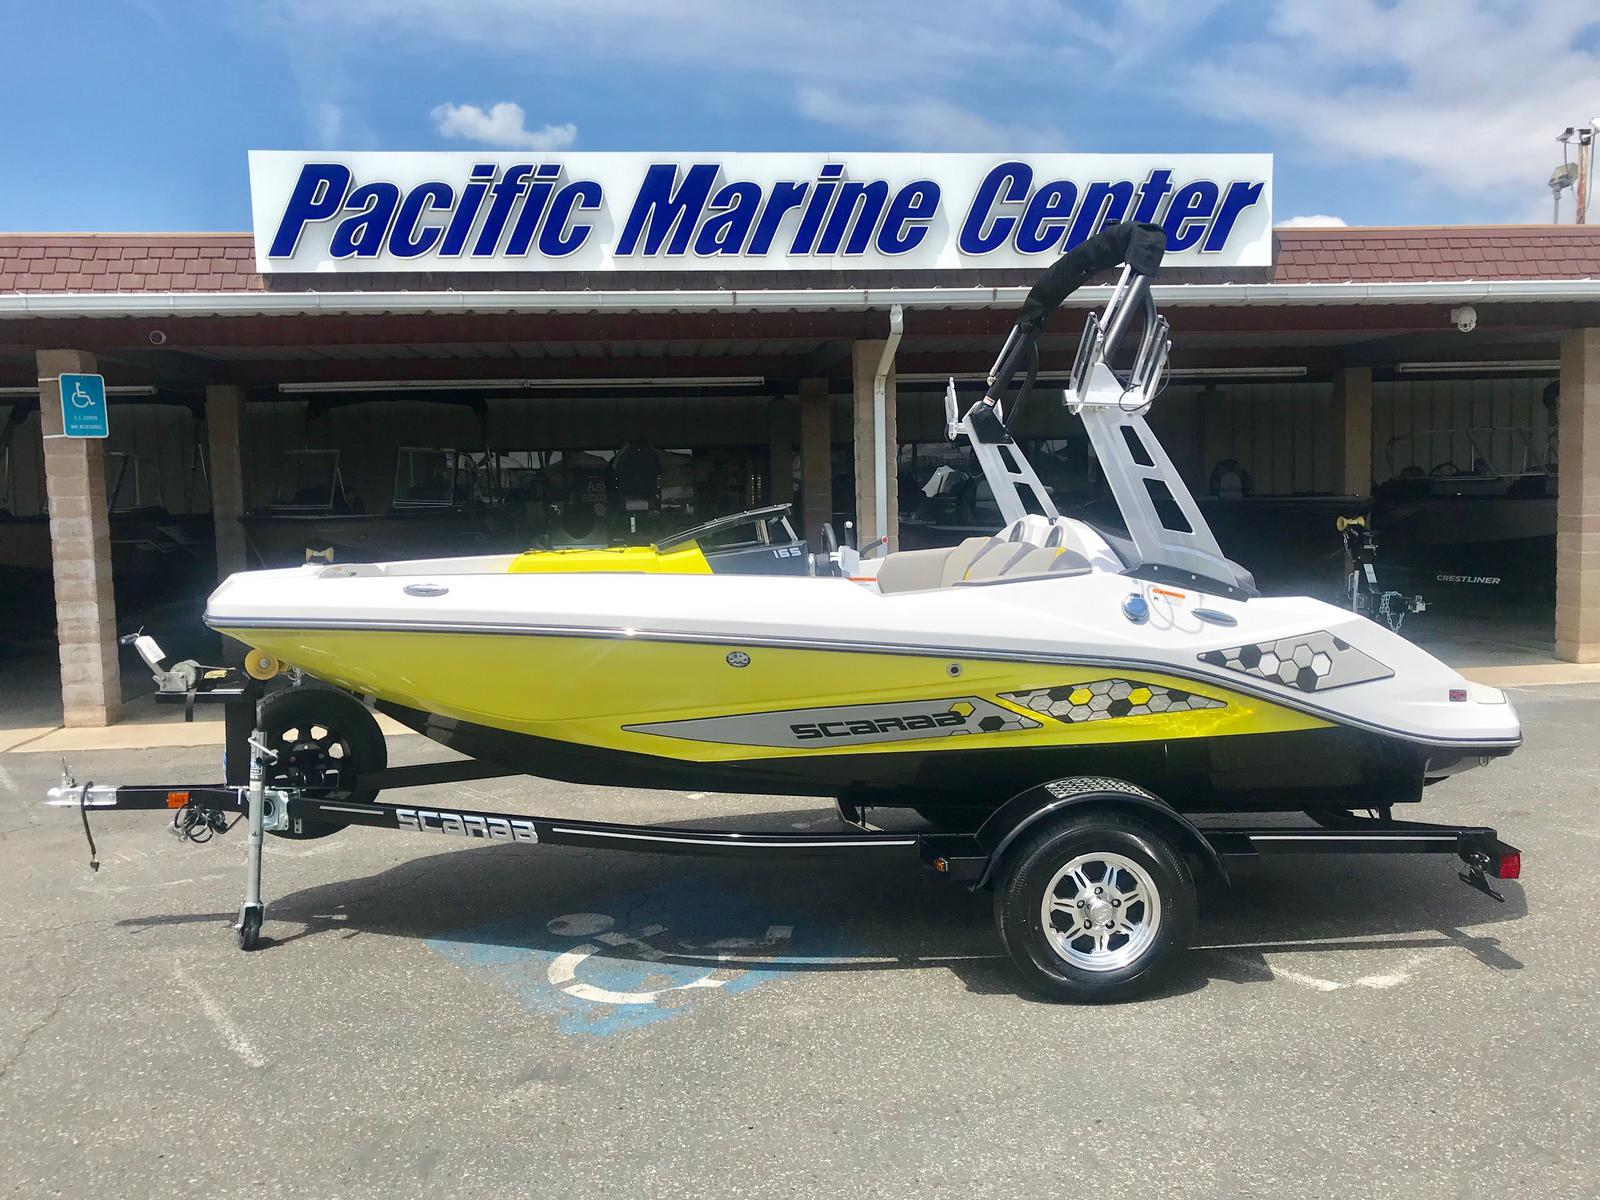 Scarab 165 ID w/250 Supercharged Rotax engine